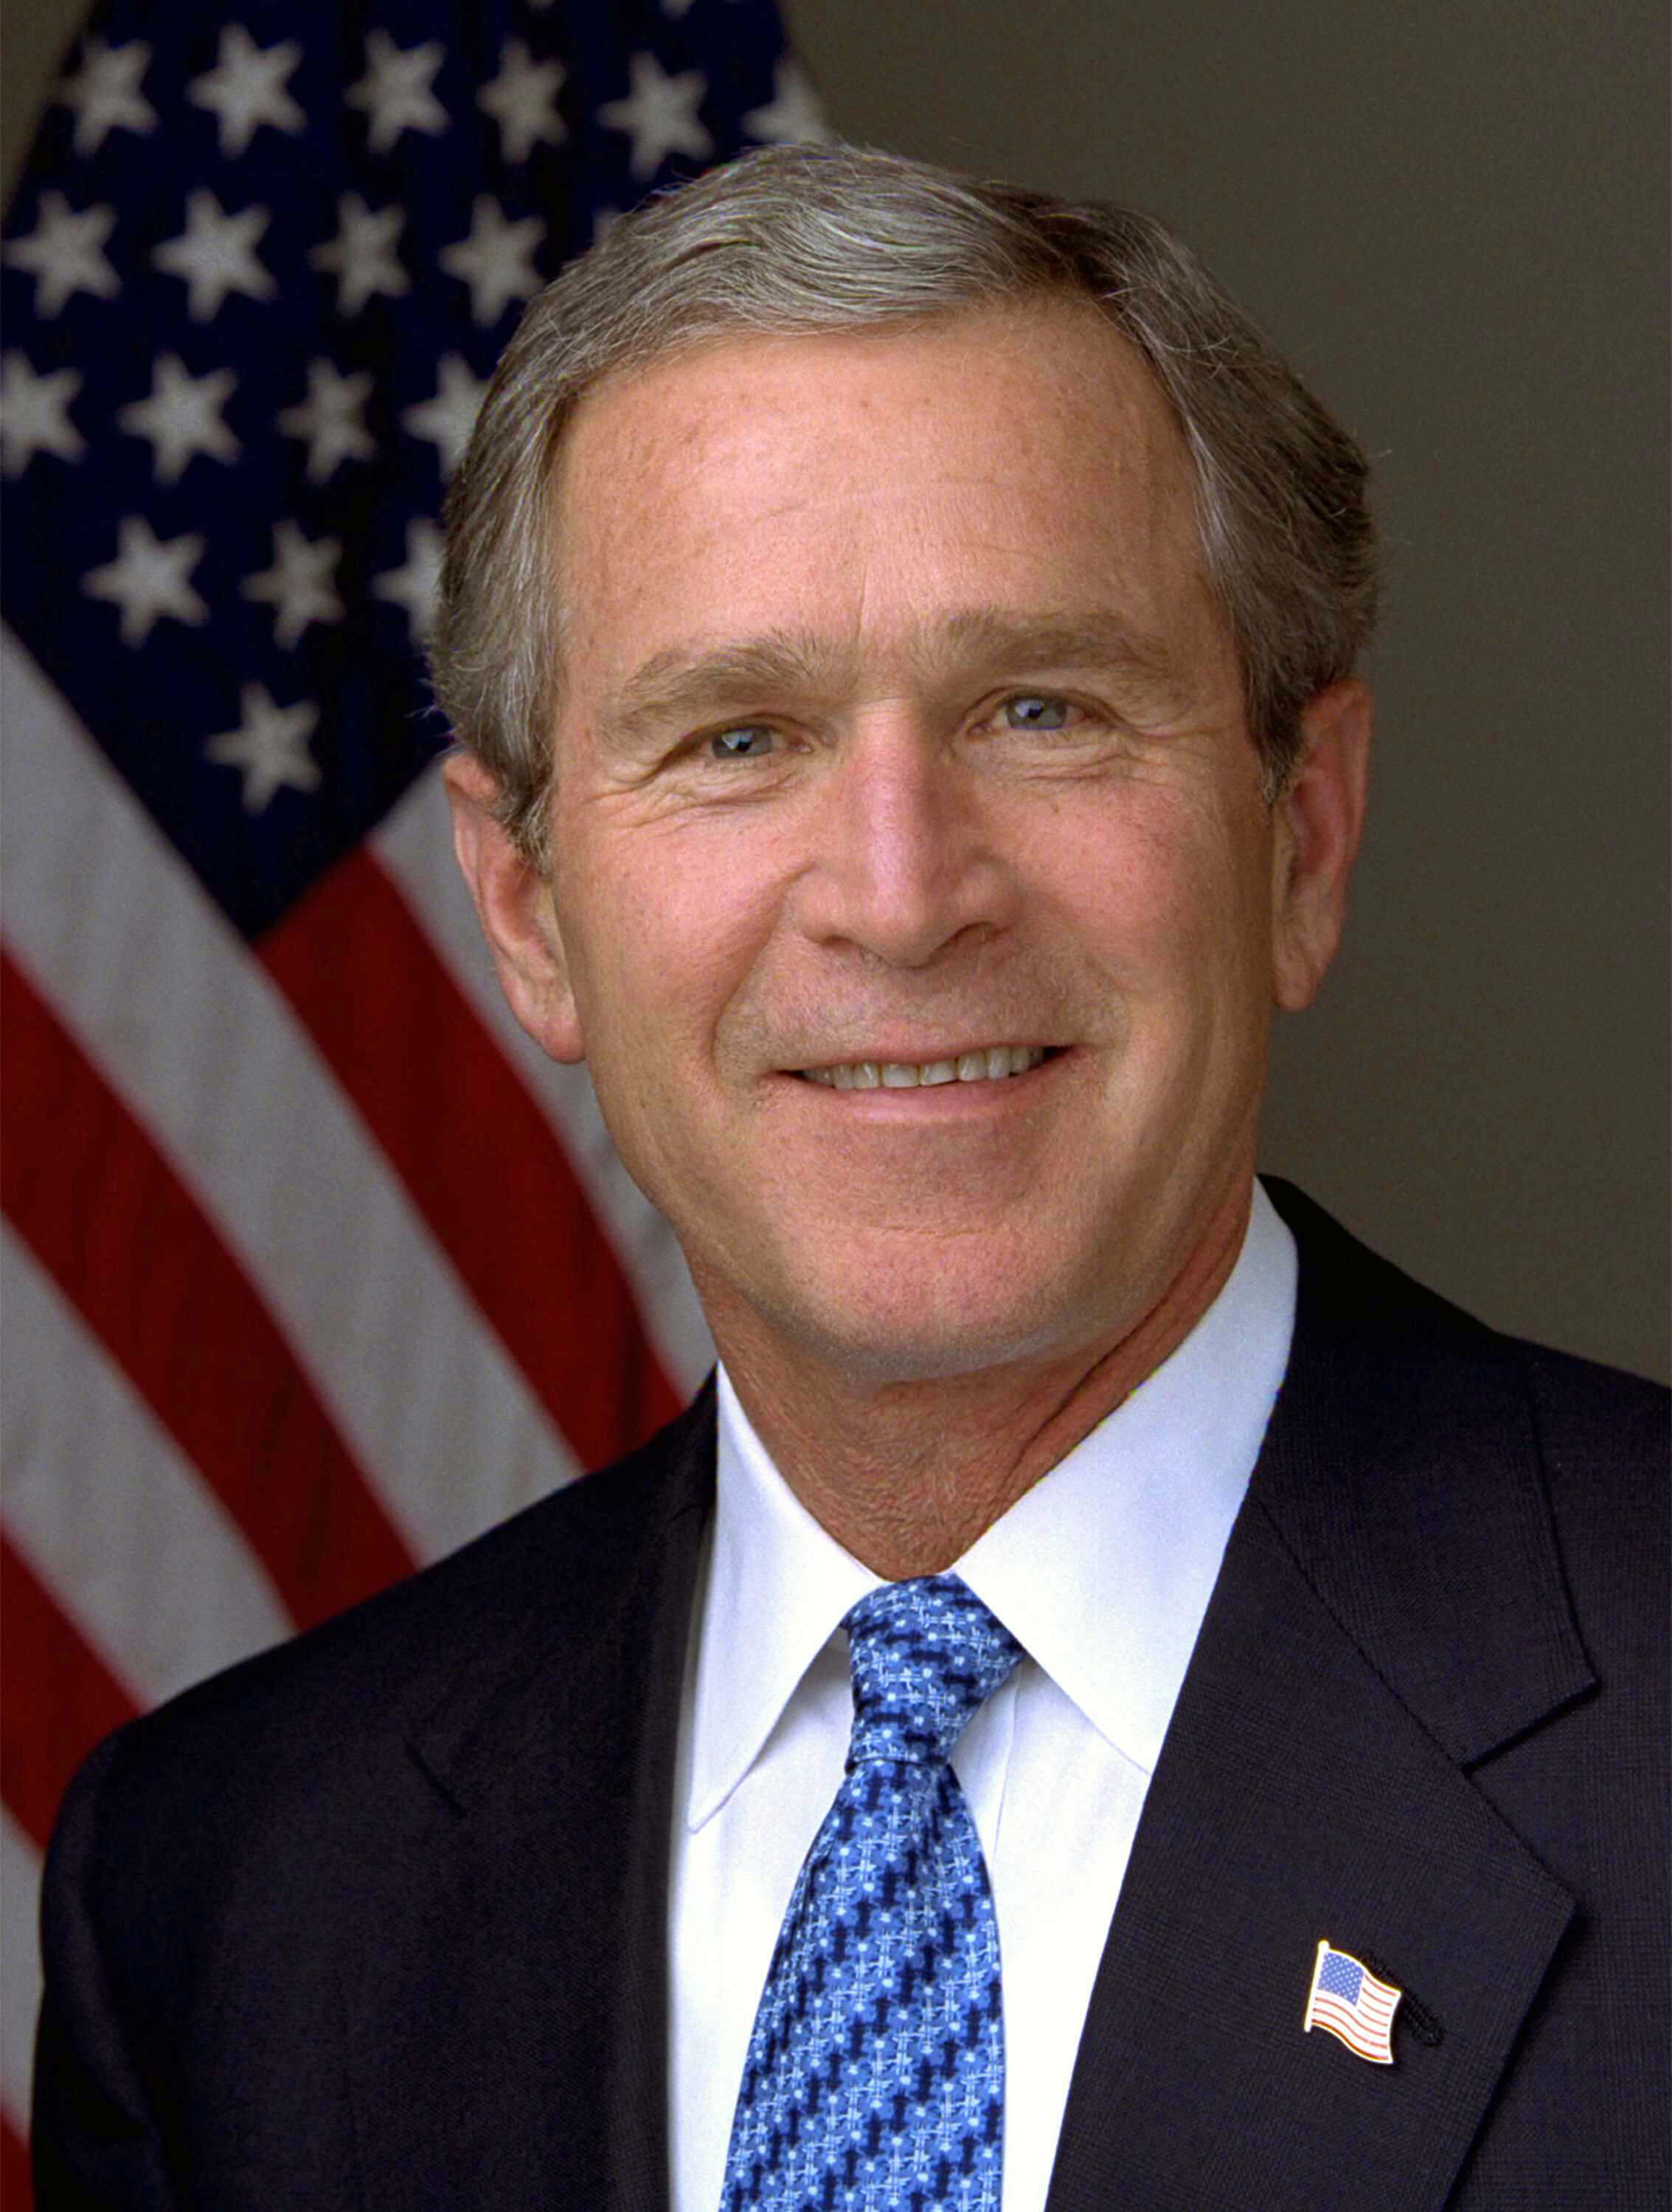 Former President George W. Bush - January 2003